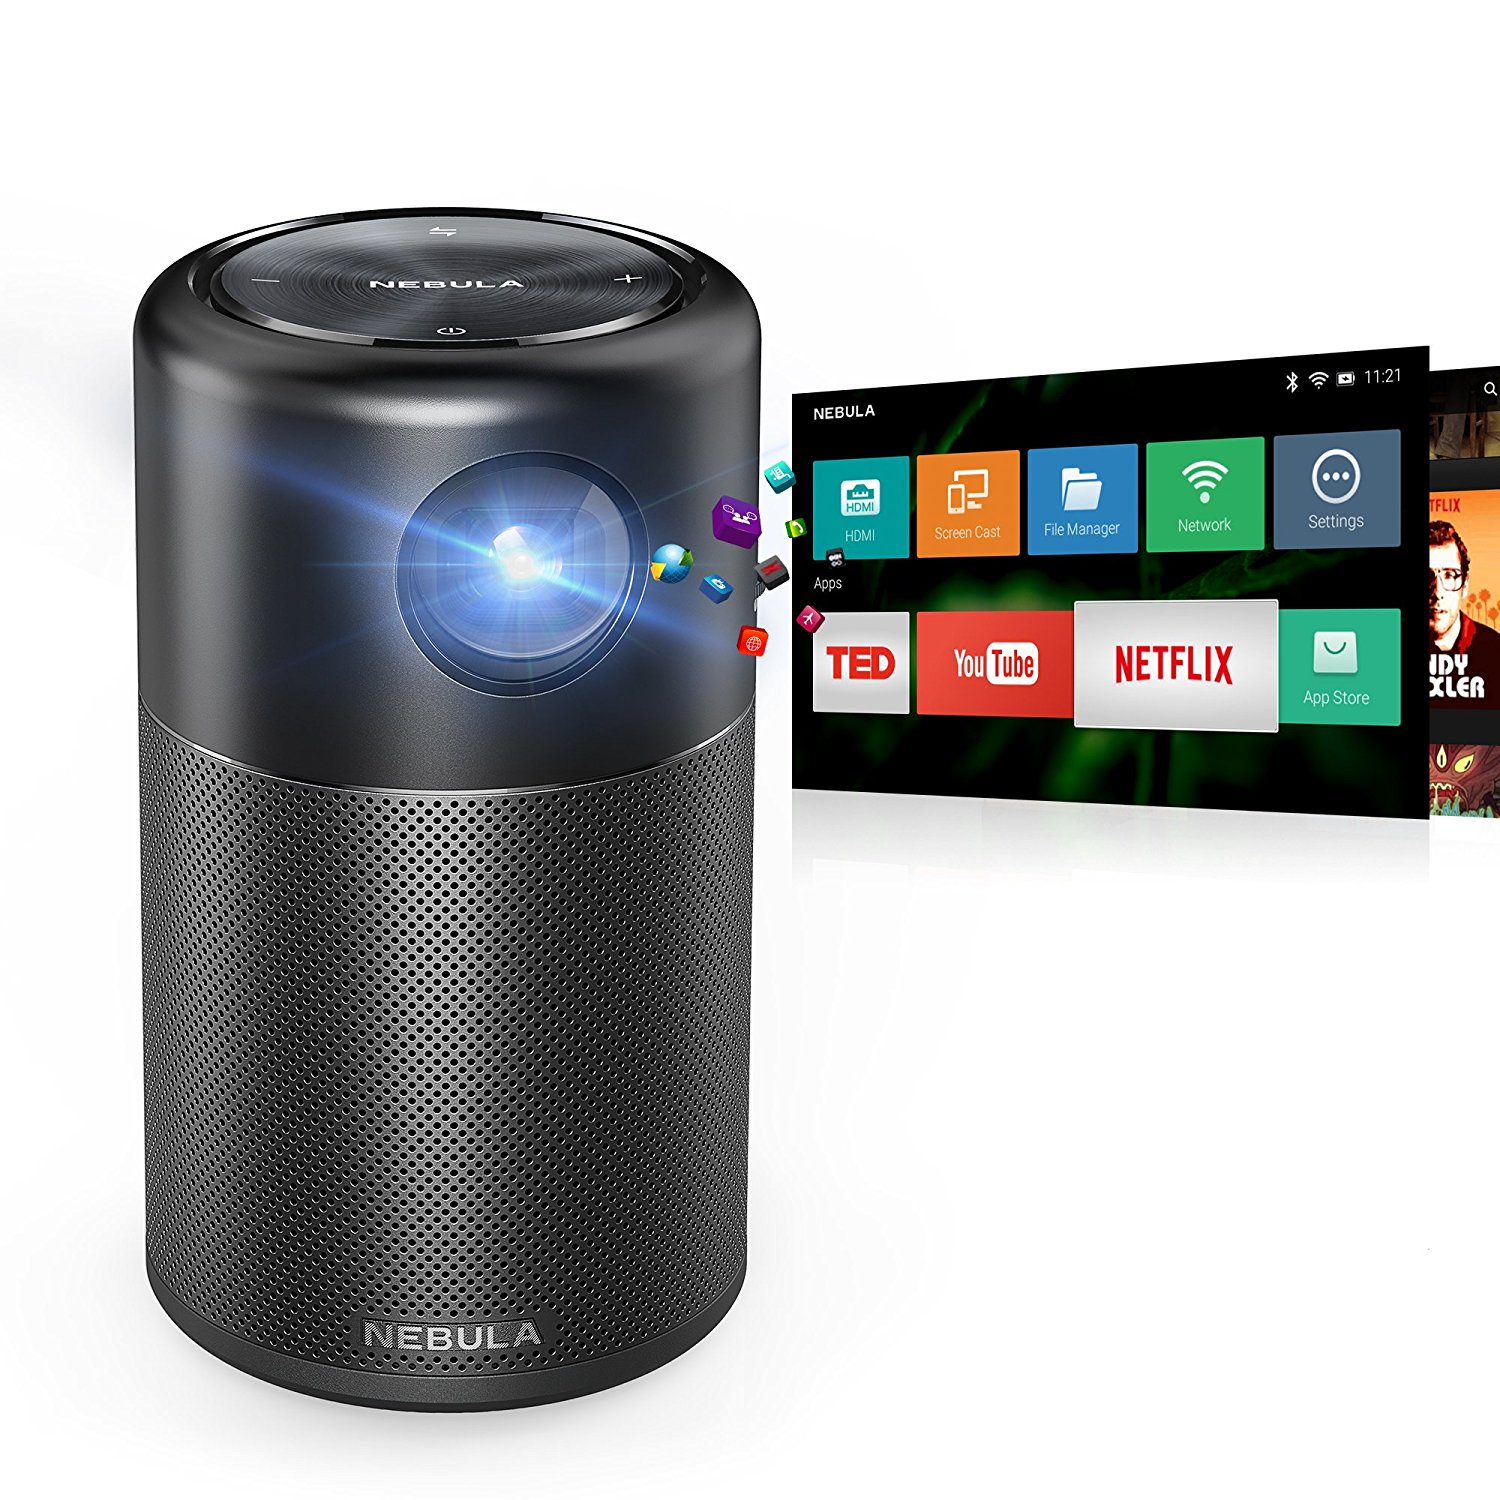 PROYECTOR NEBULA DE ANKER, PORTABLE SMART CINEMA DLP BOCINA DE 360° WI FI, ANDROID 7.1 4 HORAS DE VÍDEO CON APPS